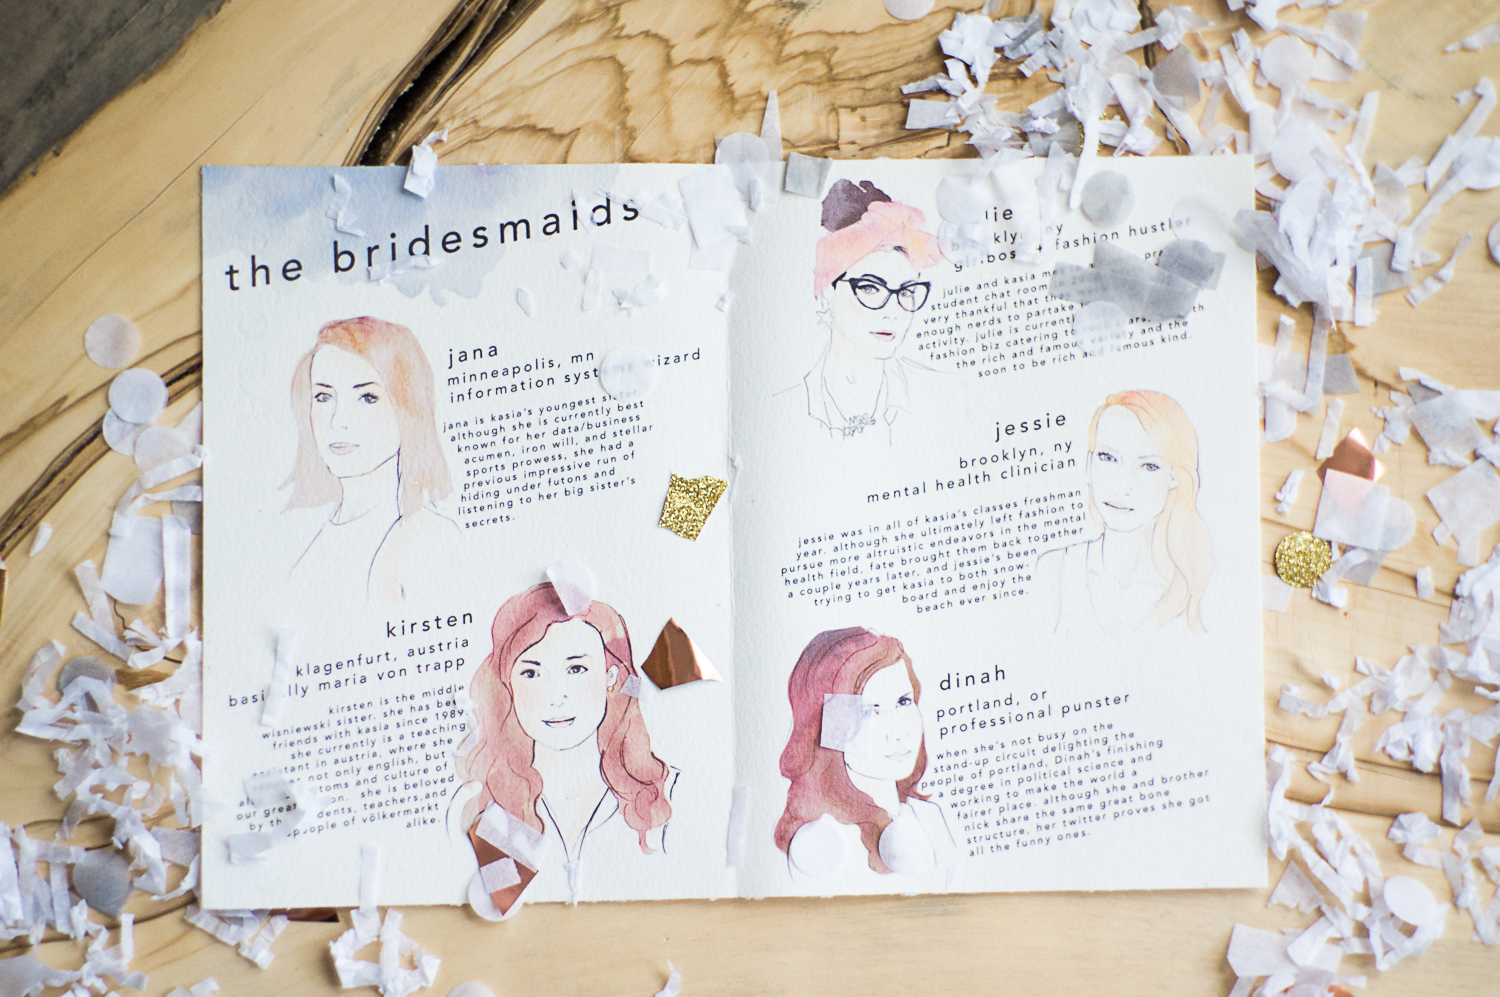 Can You Match The Illustrated Bridesmaid To Real Life